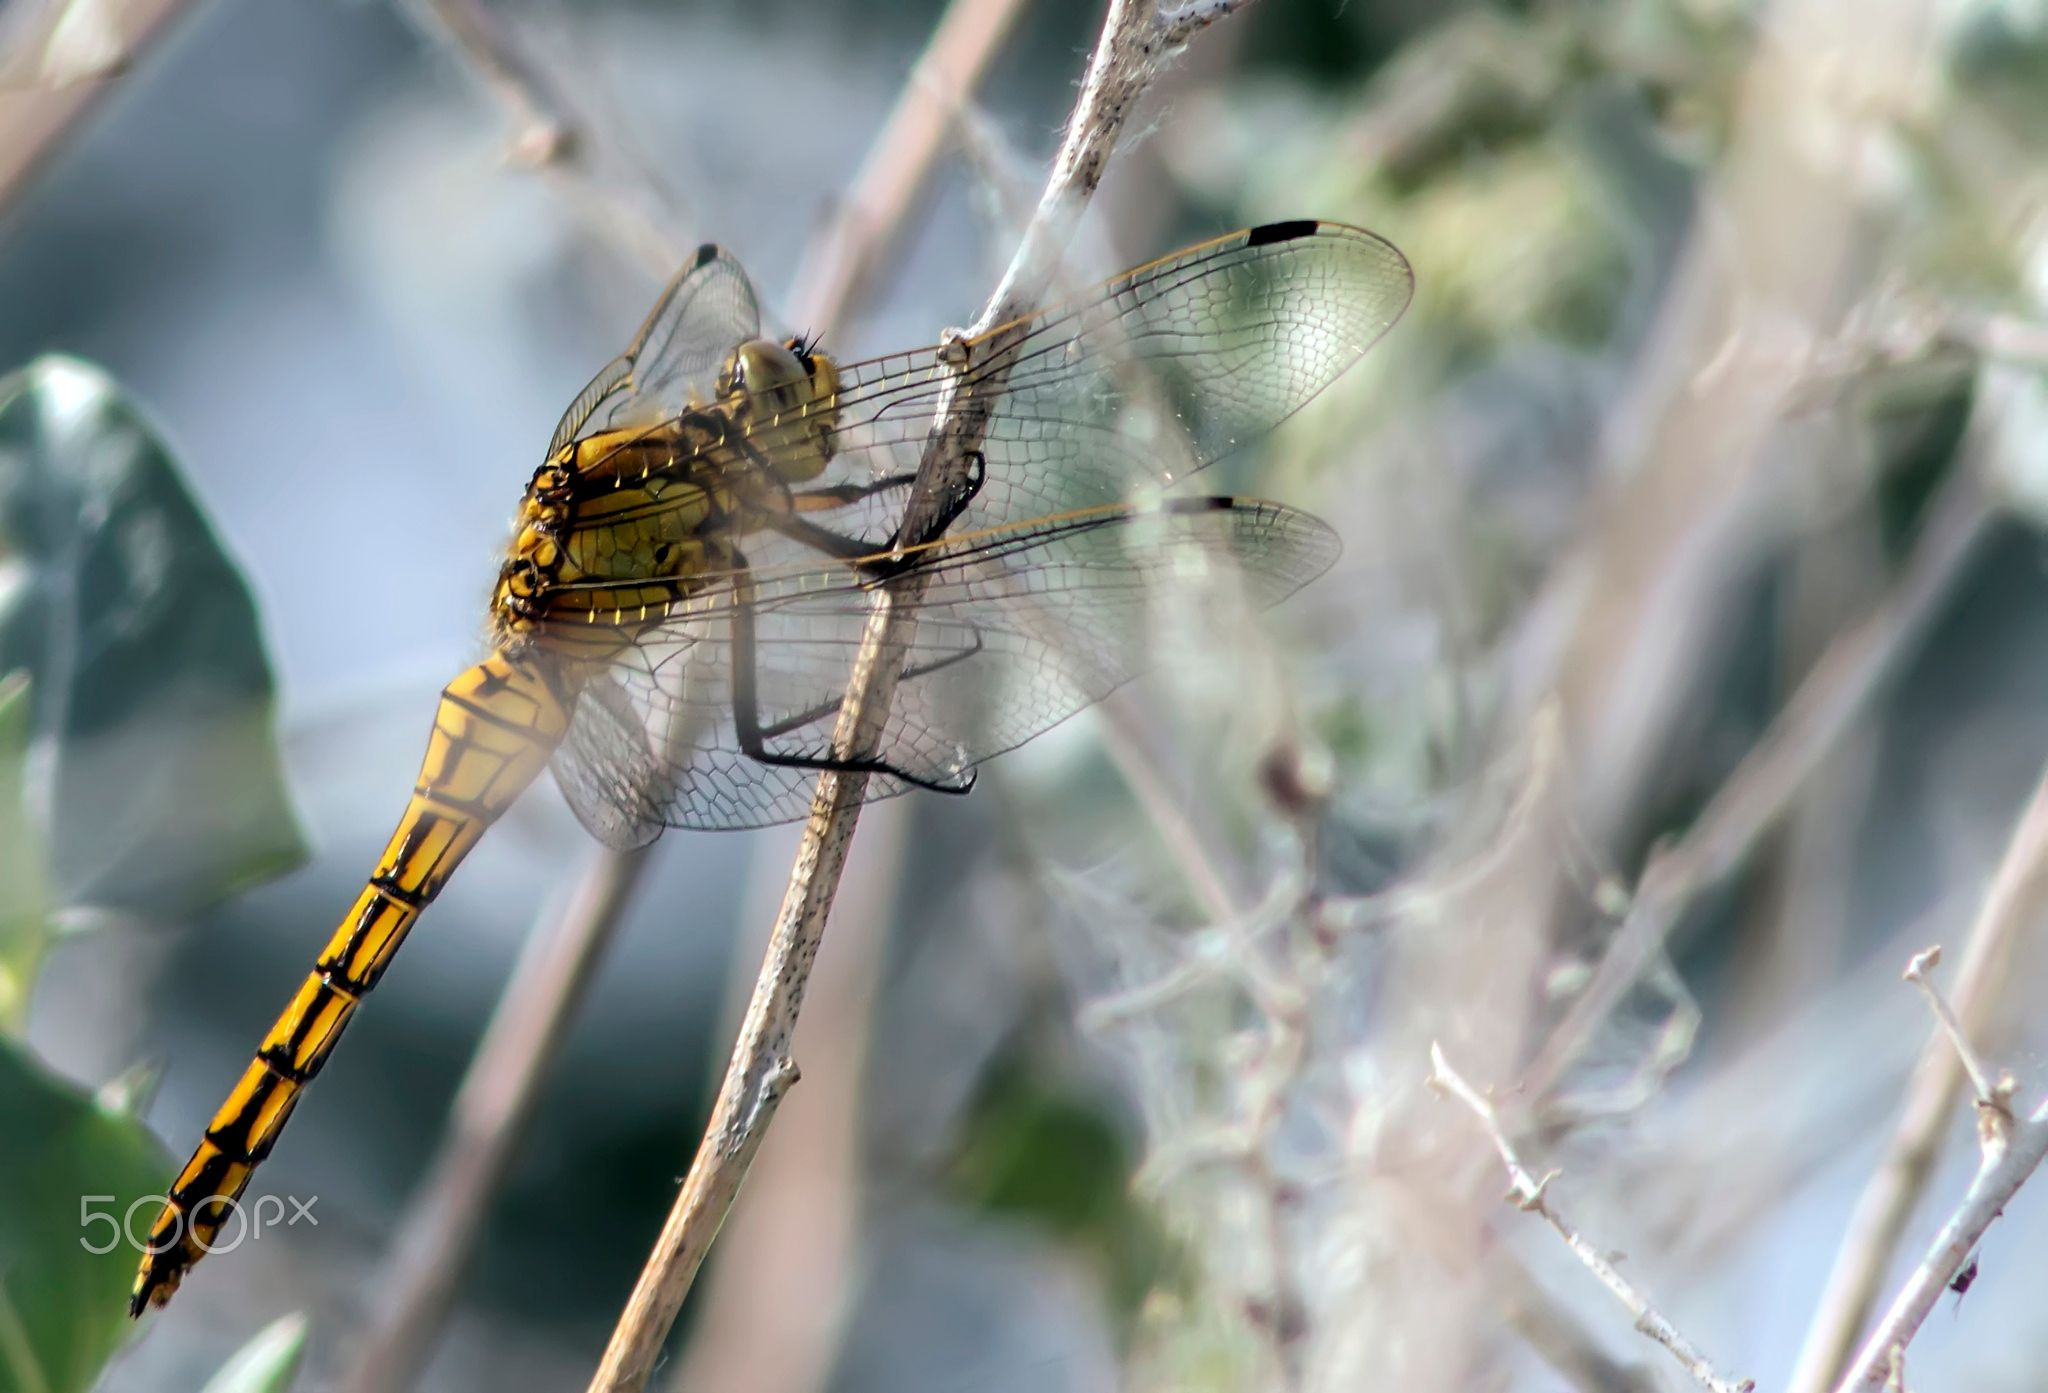 Dragon fly - Libélula tigre